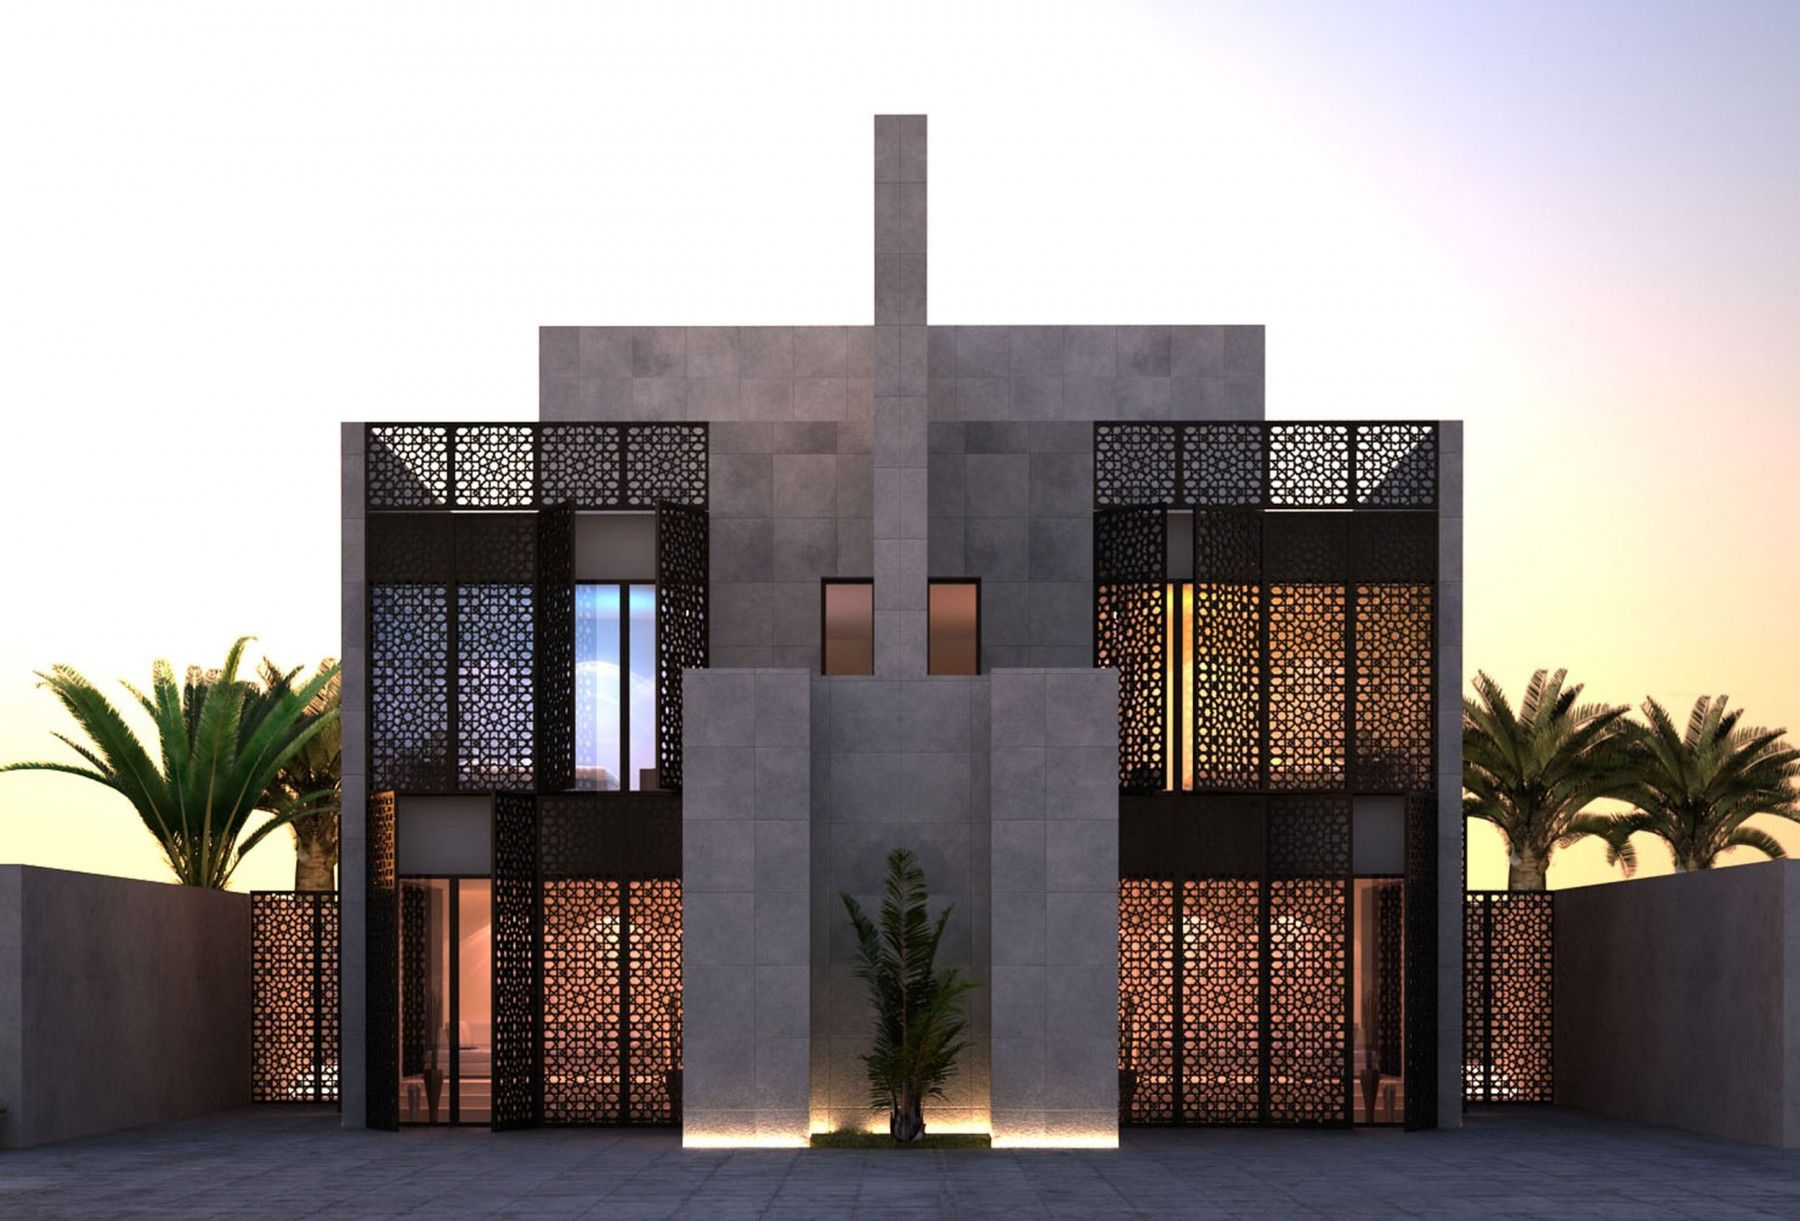 Top international architecture design jeddah housing Top interior design companies in the world